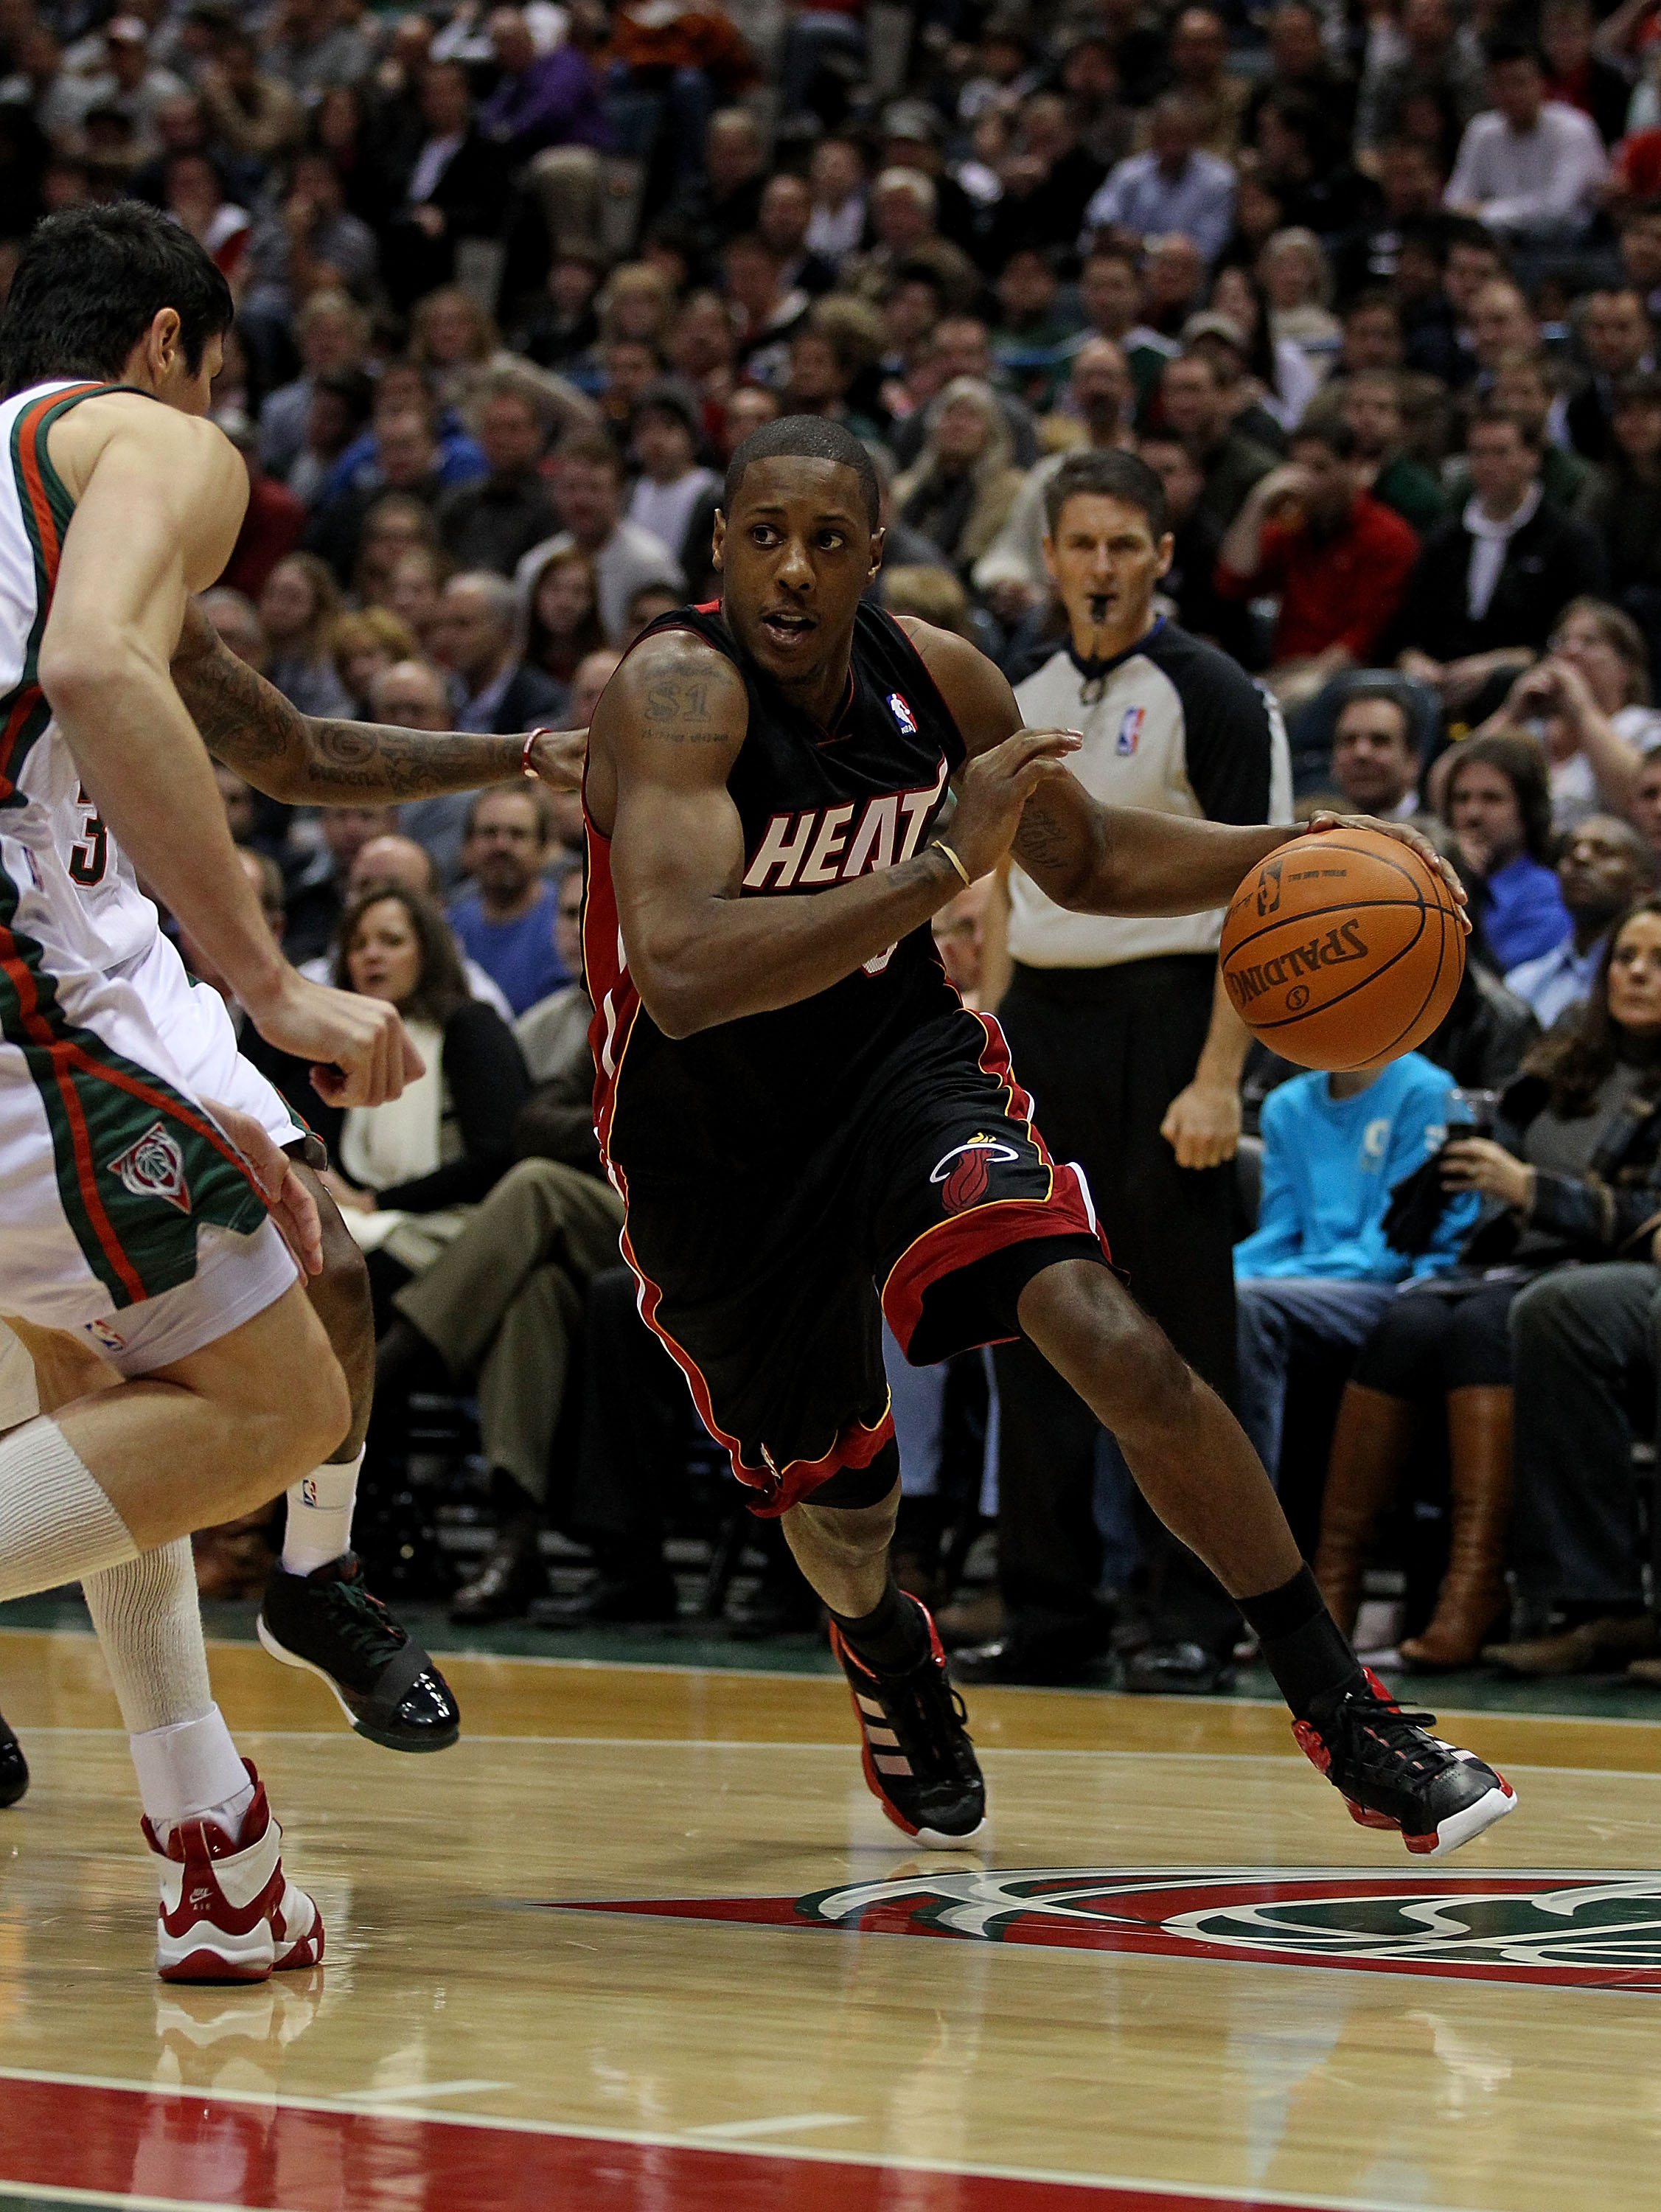 MILWAUKEE, WI - DECEMBER 06: Mario Chalmers #15 of the Miami Heat drives towards Ersan Ilyasova #7 of the Milwaukee Bucks at the Bradley Center on December 6, 2010 in Milwaukee, Wisconsin. The Heat defeated the Bucks 88-78. NOTE TO USER: User expressly ac